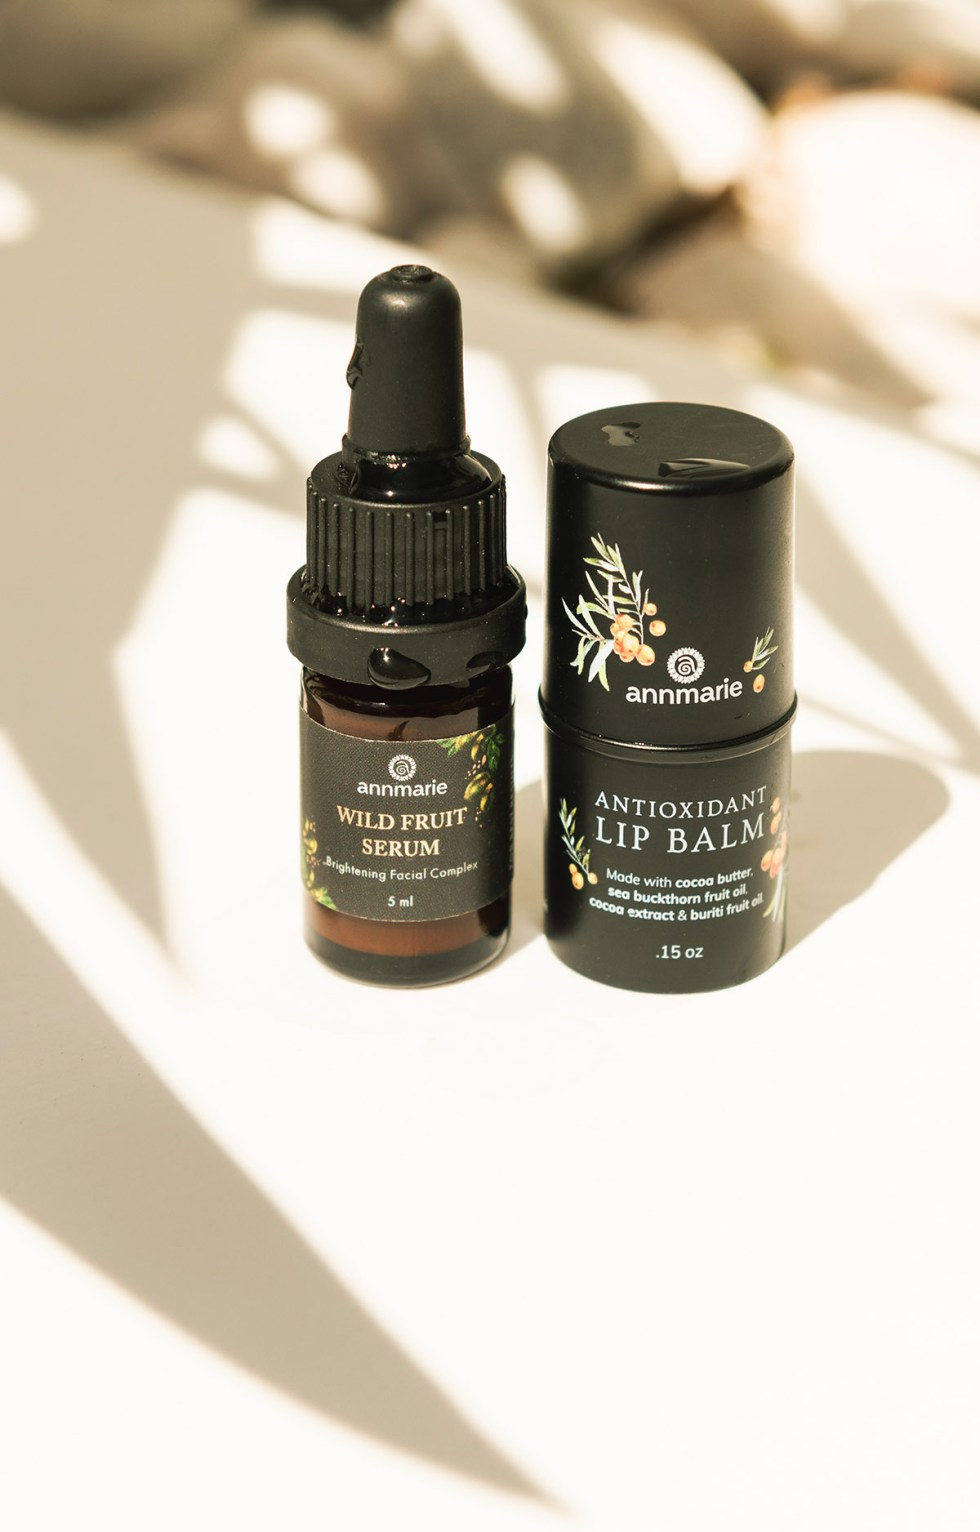 AnnMarie Skincare On White/Shadowed Background